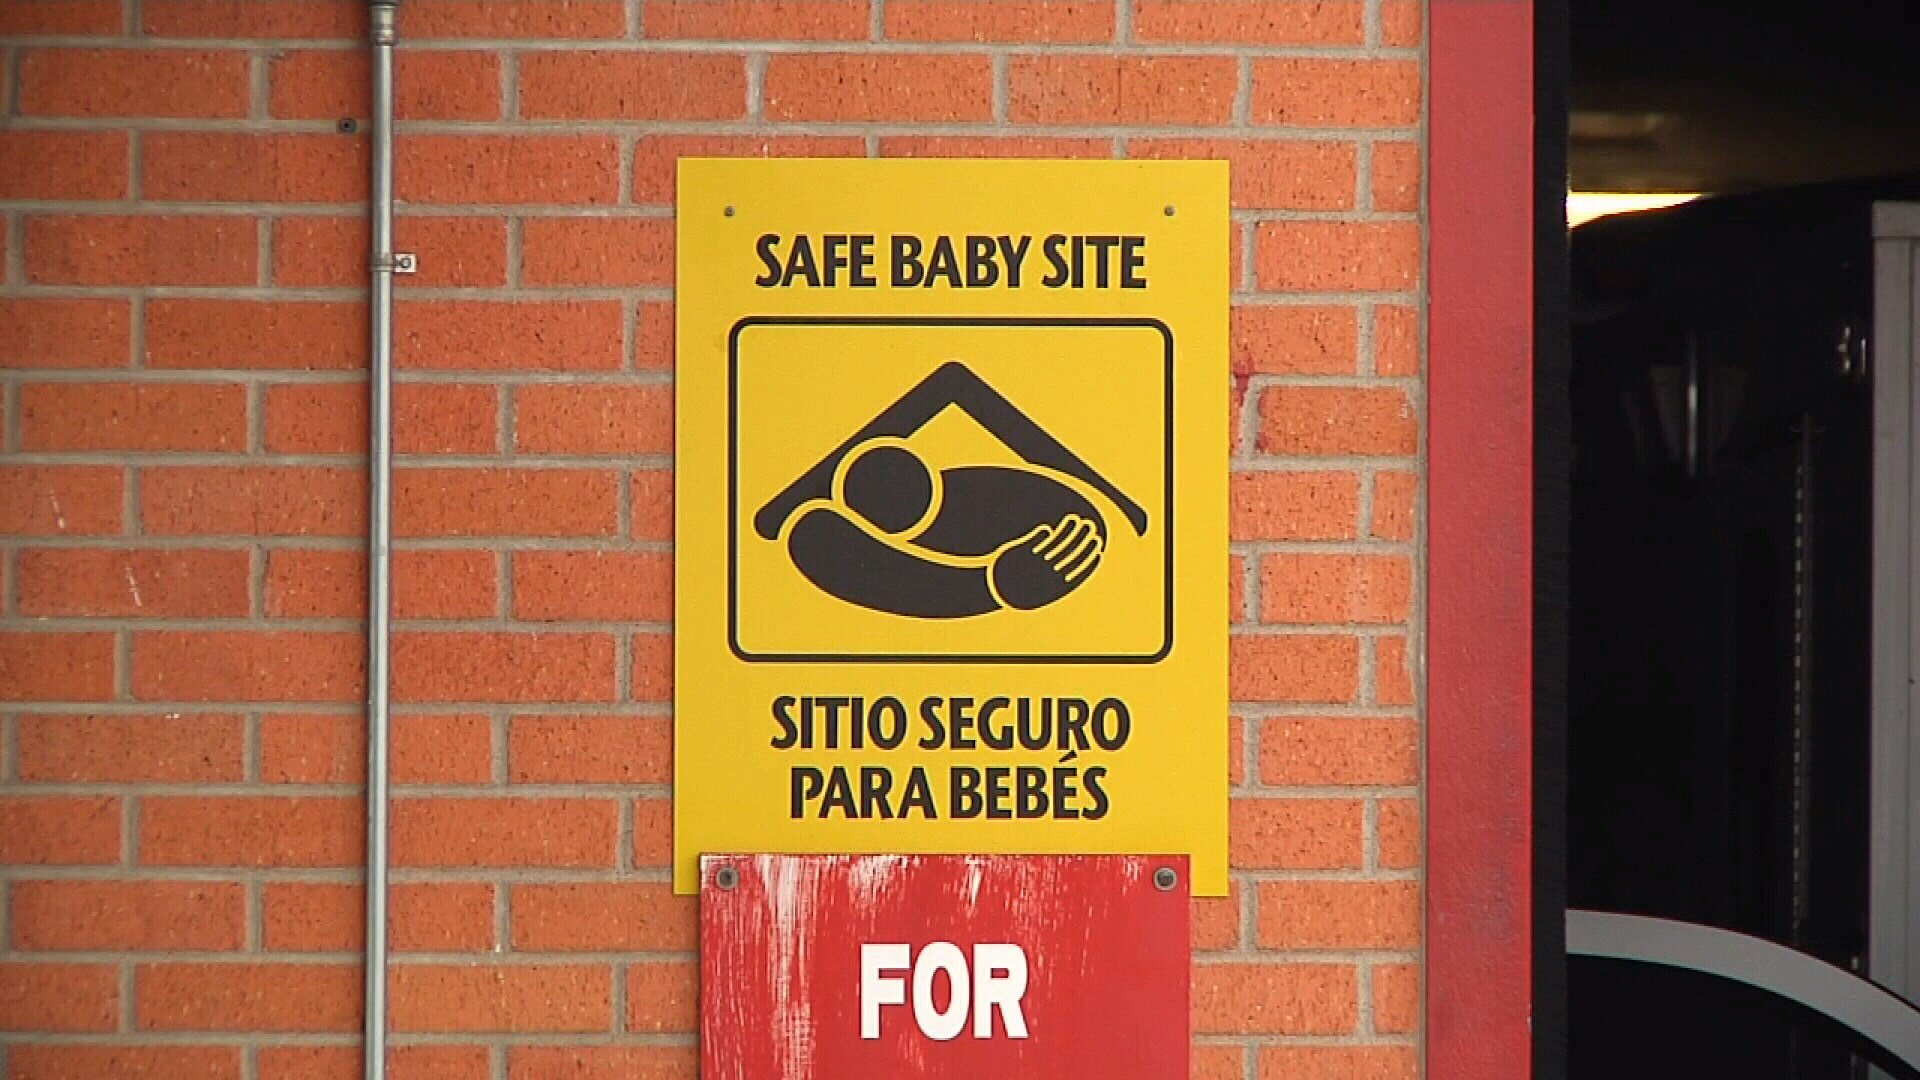 The Safe Haven Law applies for infants in good health and under 60 days old. Safe havens include fire stations, hospitals and certain medical facilities.